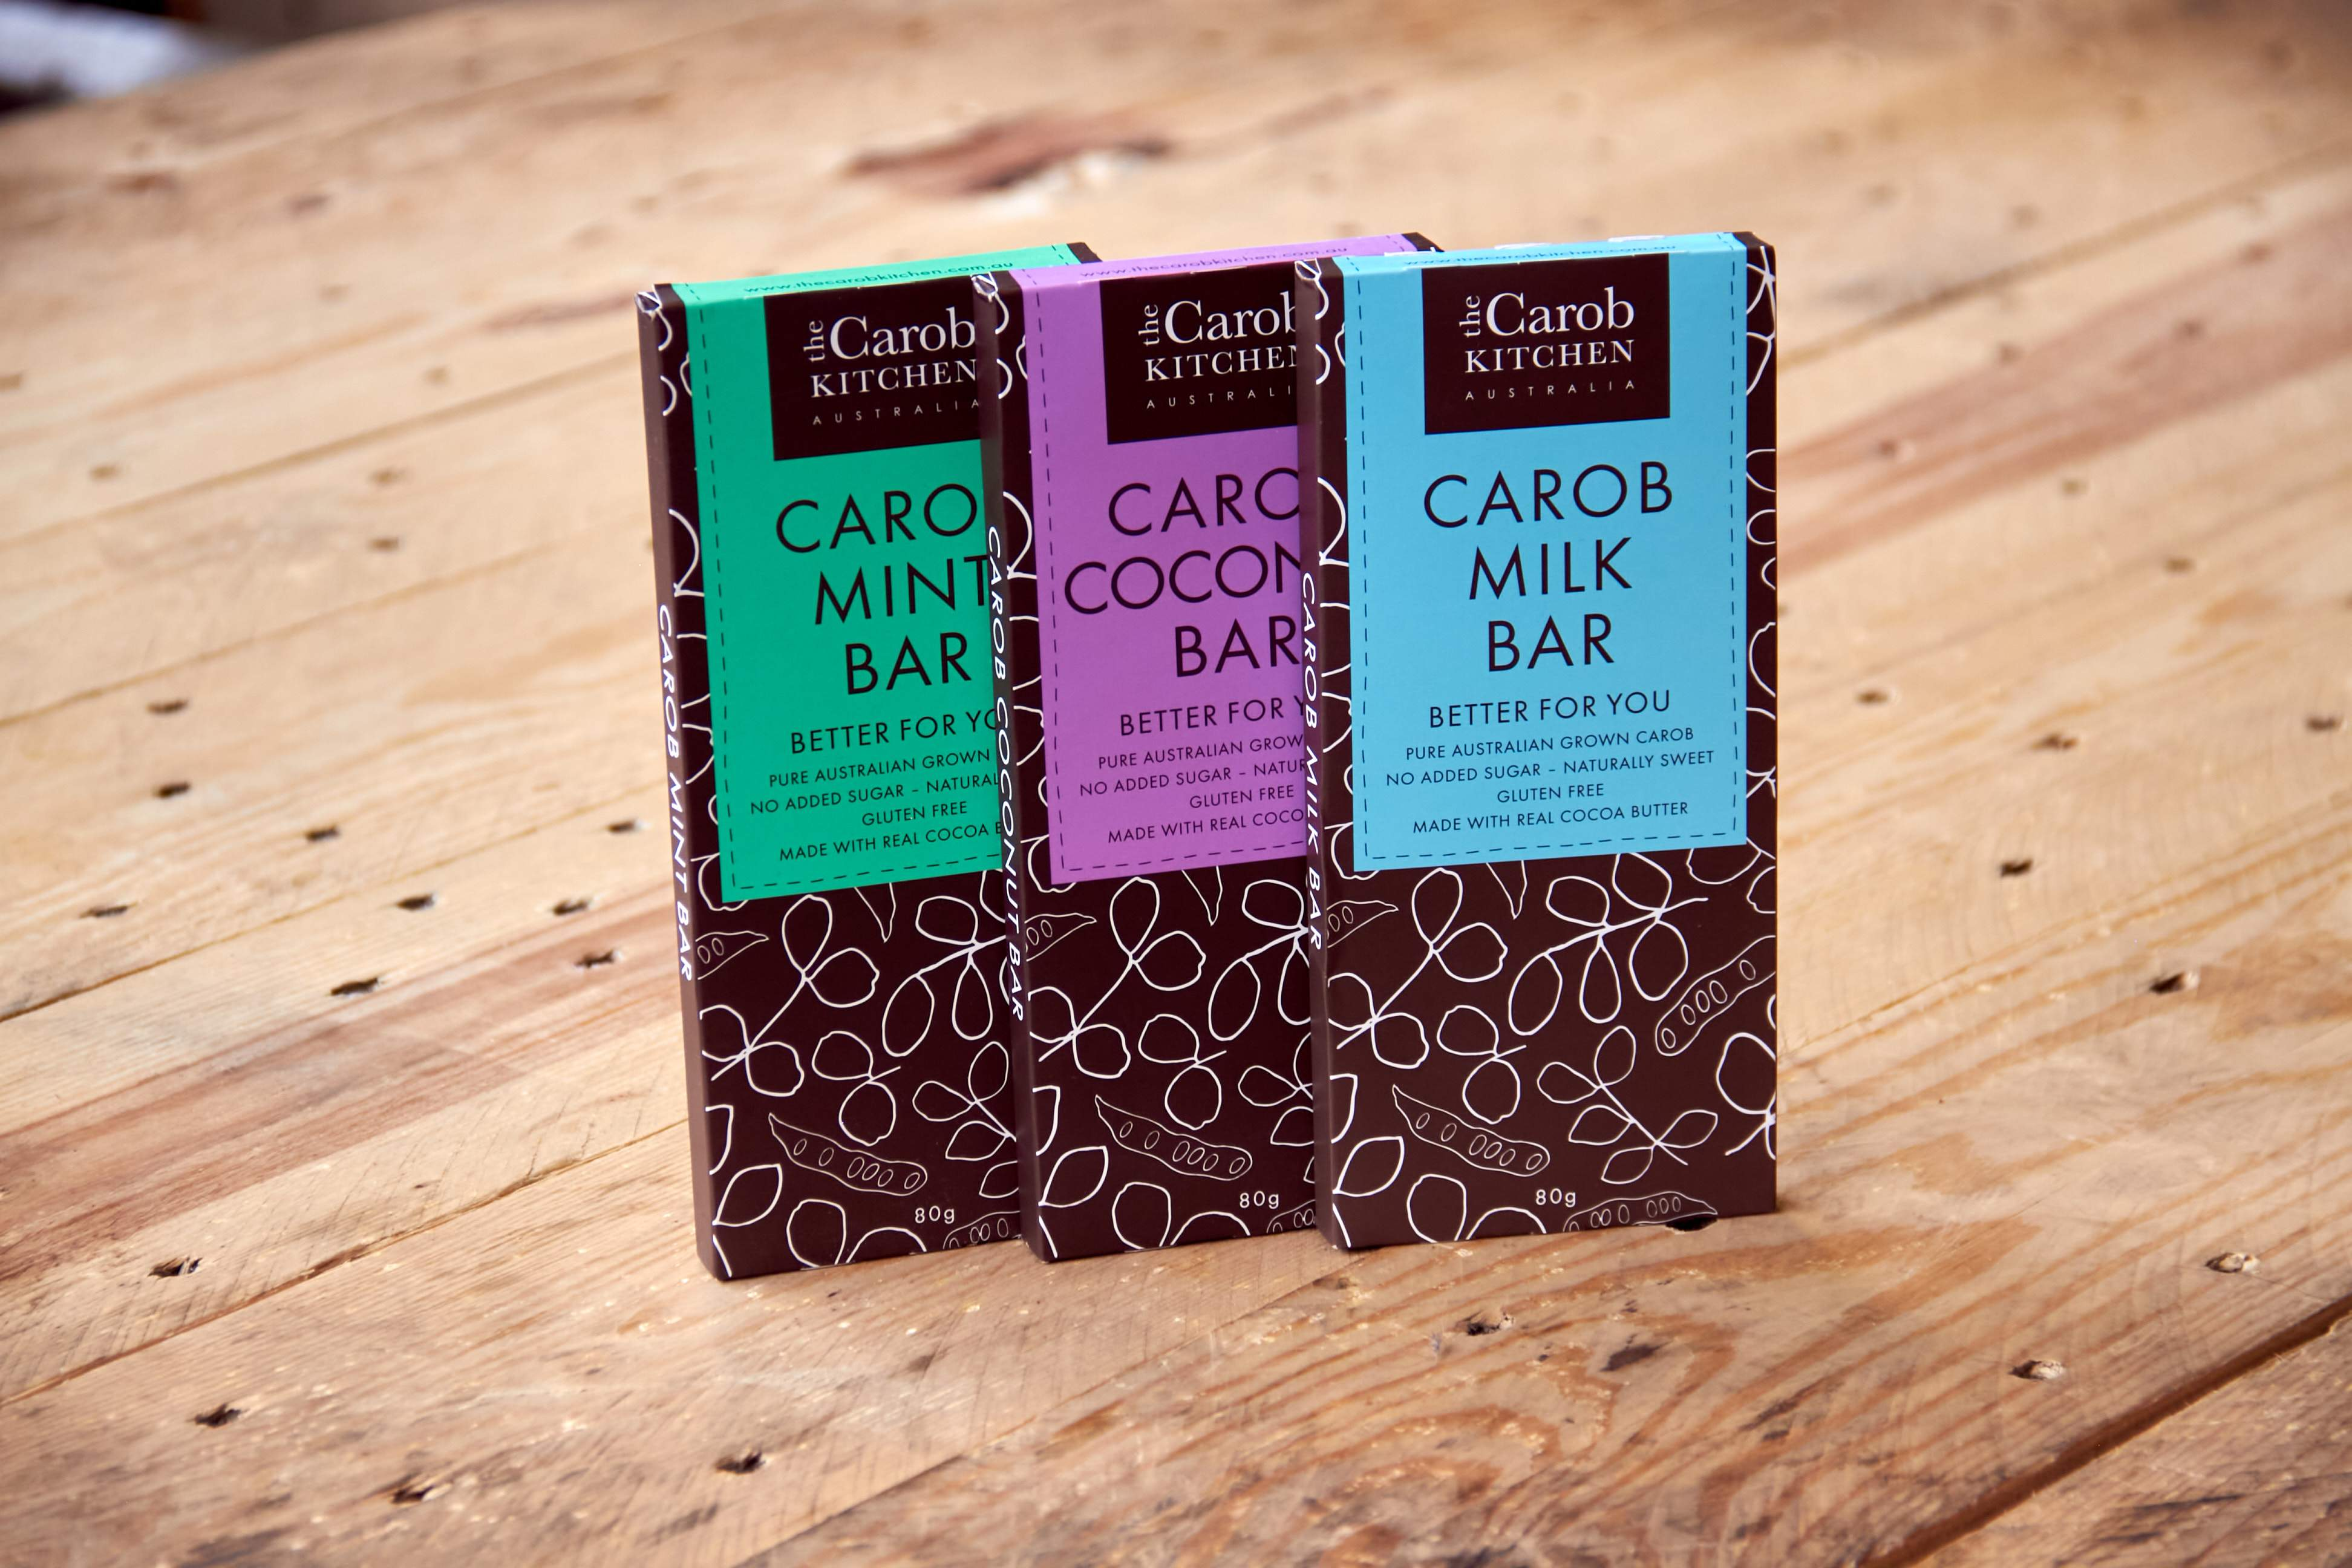 The Carob Kitchen Bars 80g